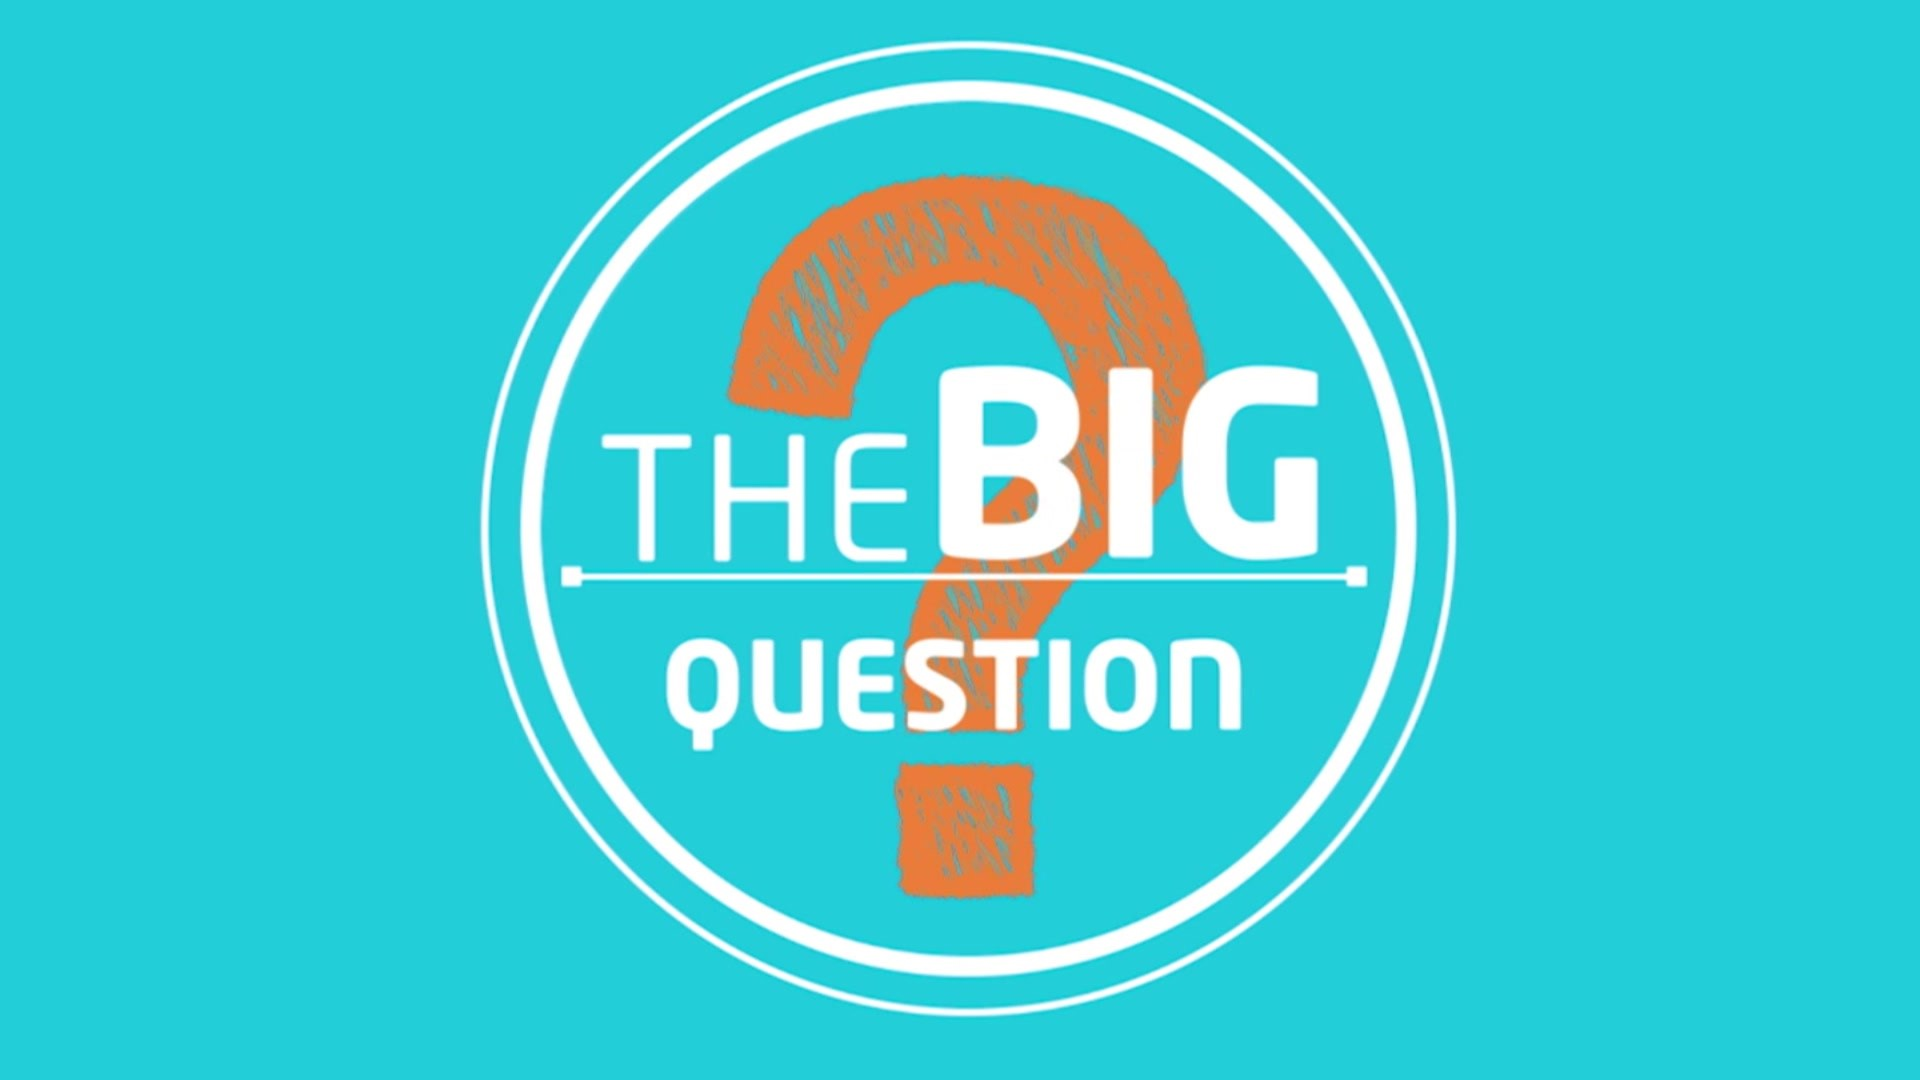 a876b16656 Send Us Your Questions: The Big Question: Send Us Your Questions ...